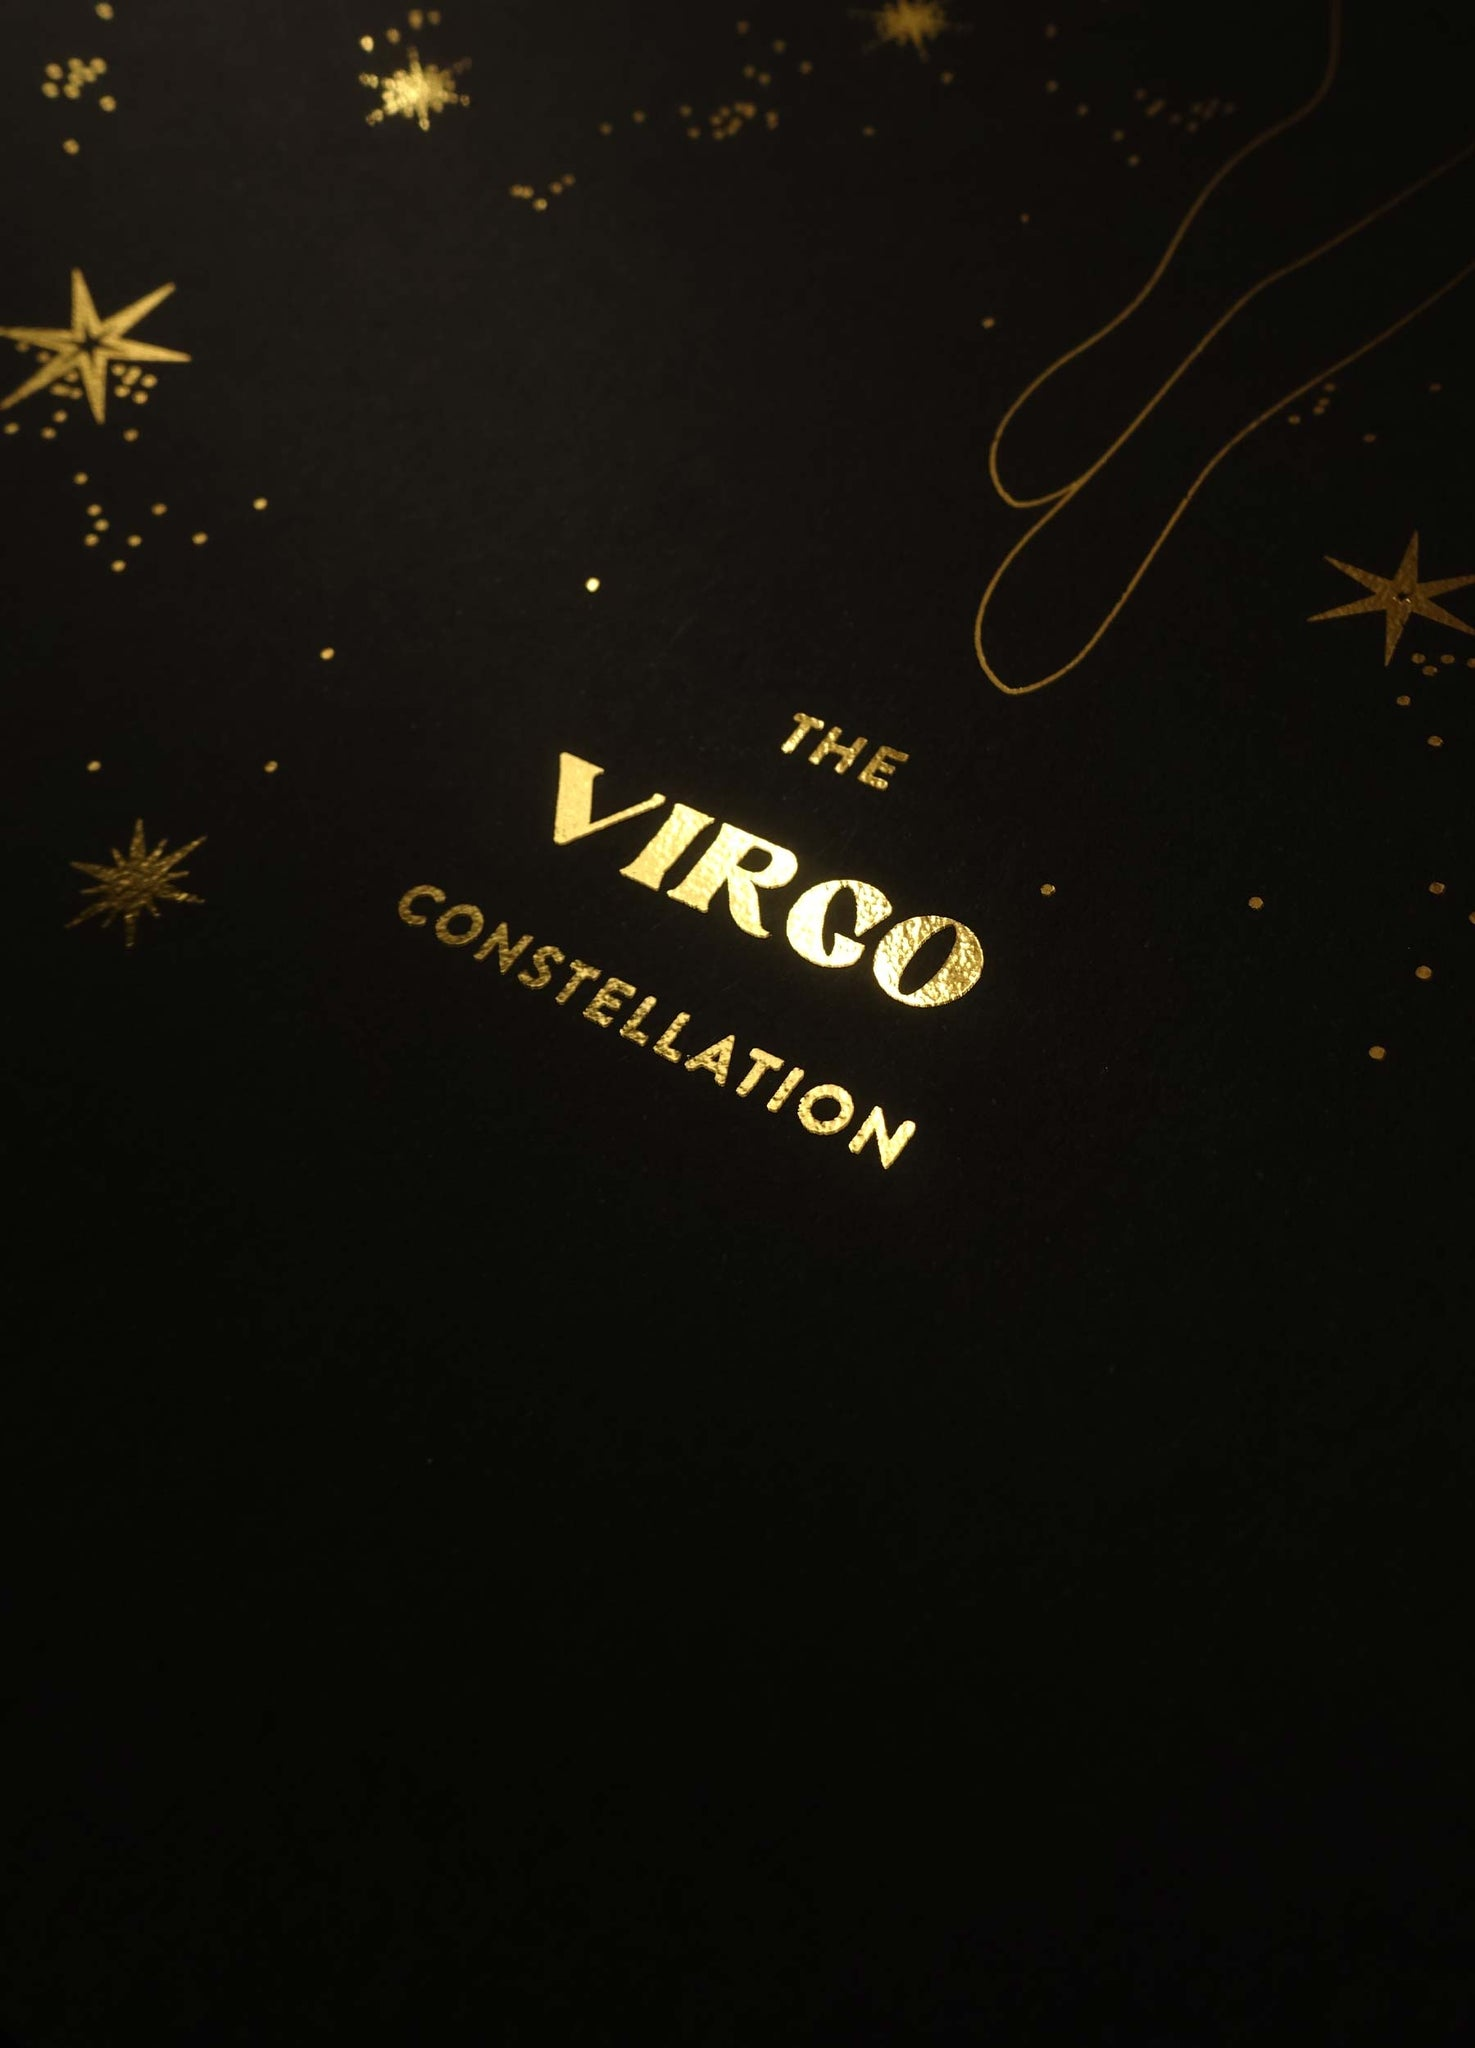 Virgo Constellation gold foil art print on black paper by Cocorrina & design studio and shop